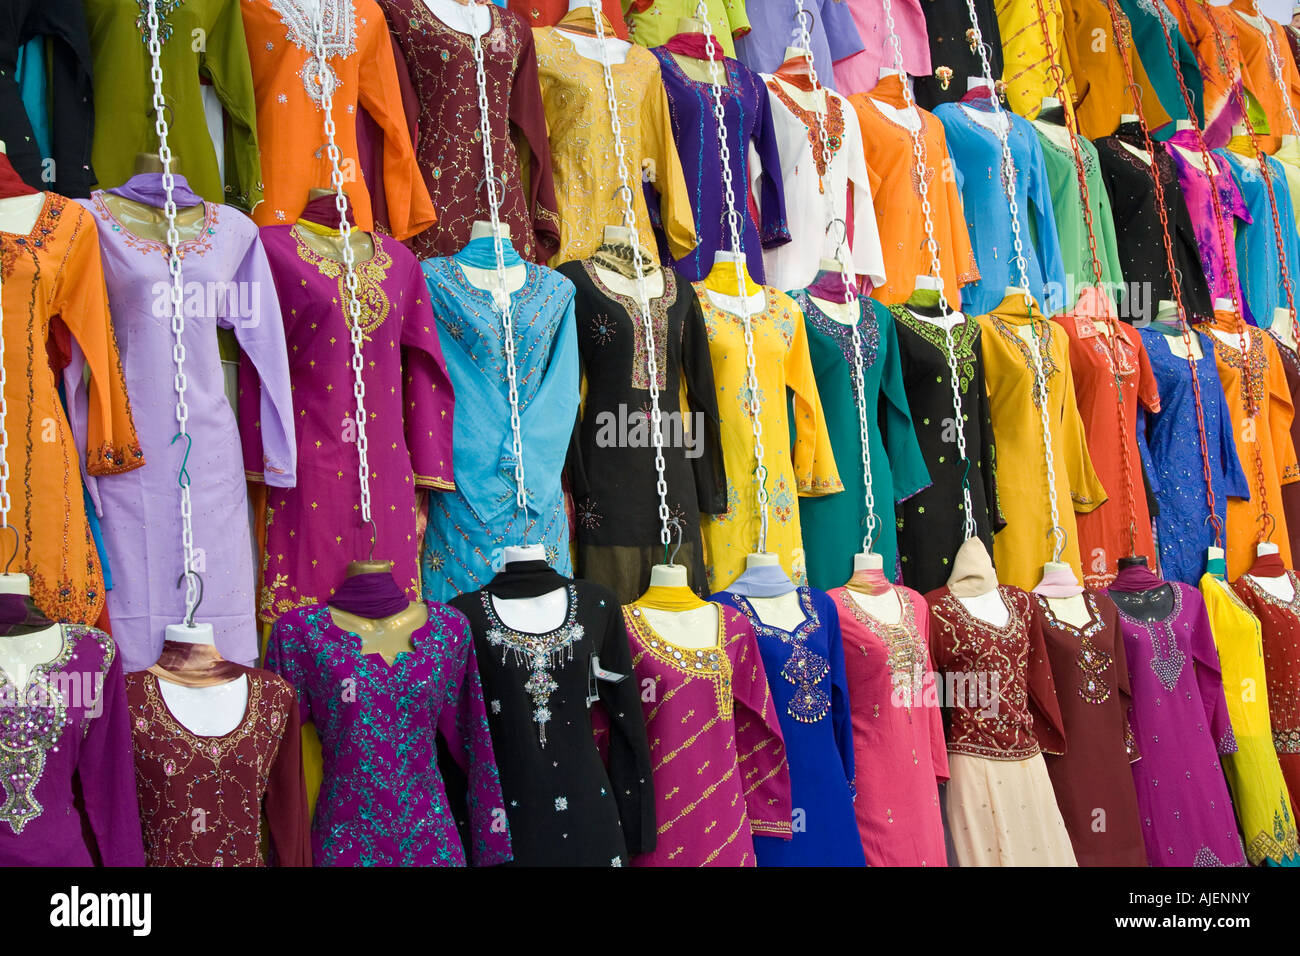 Indian clothes store